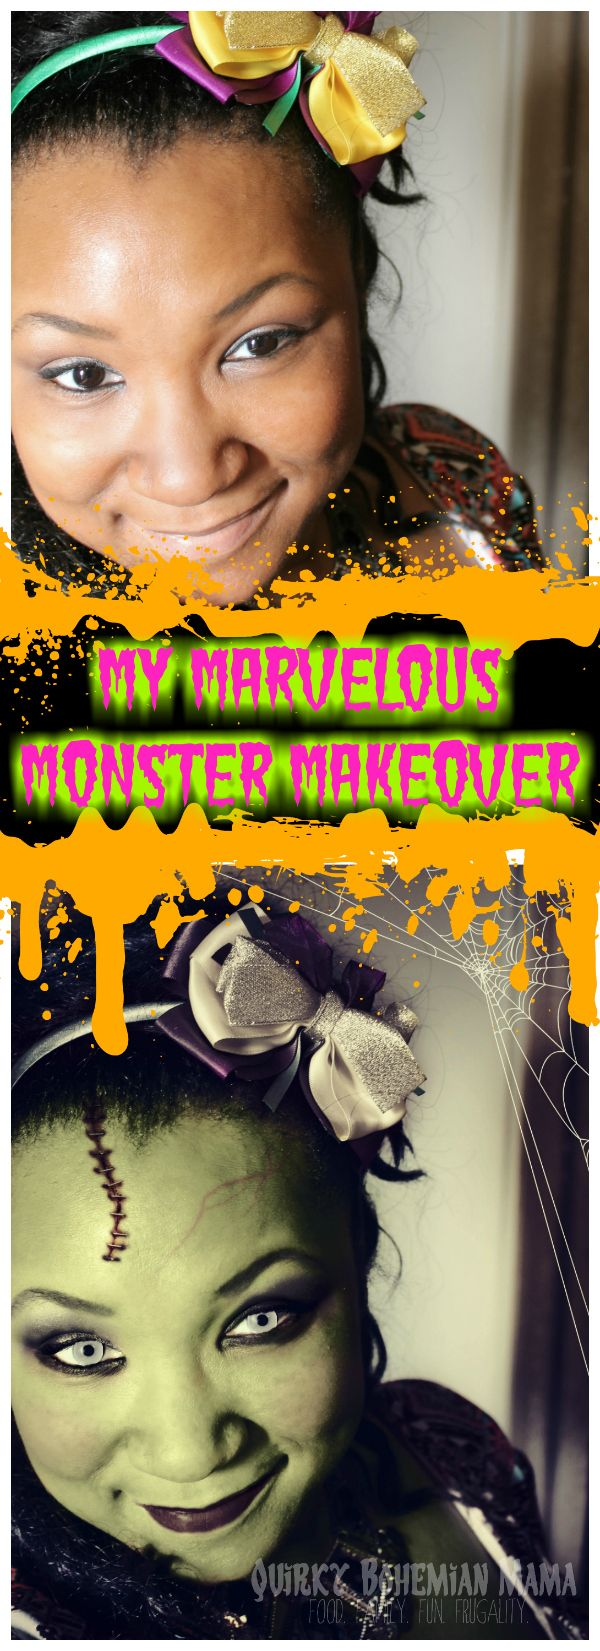 My Marvelous Monster Makeover  {Halloween PicMonkey photo editing} PicMonkey Halloween photo editor. How to make yourself look like a monster using PicMonkey. Halloween makeup inspiration. Bride of Frankenstein makeup. #halloween #zombie